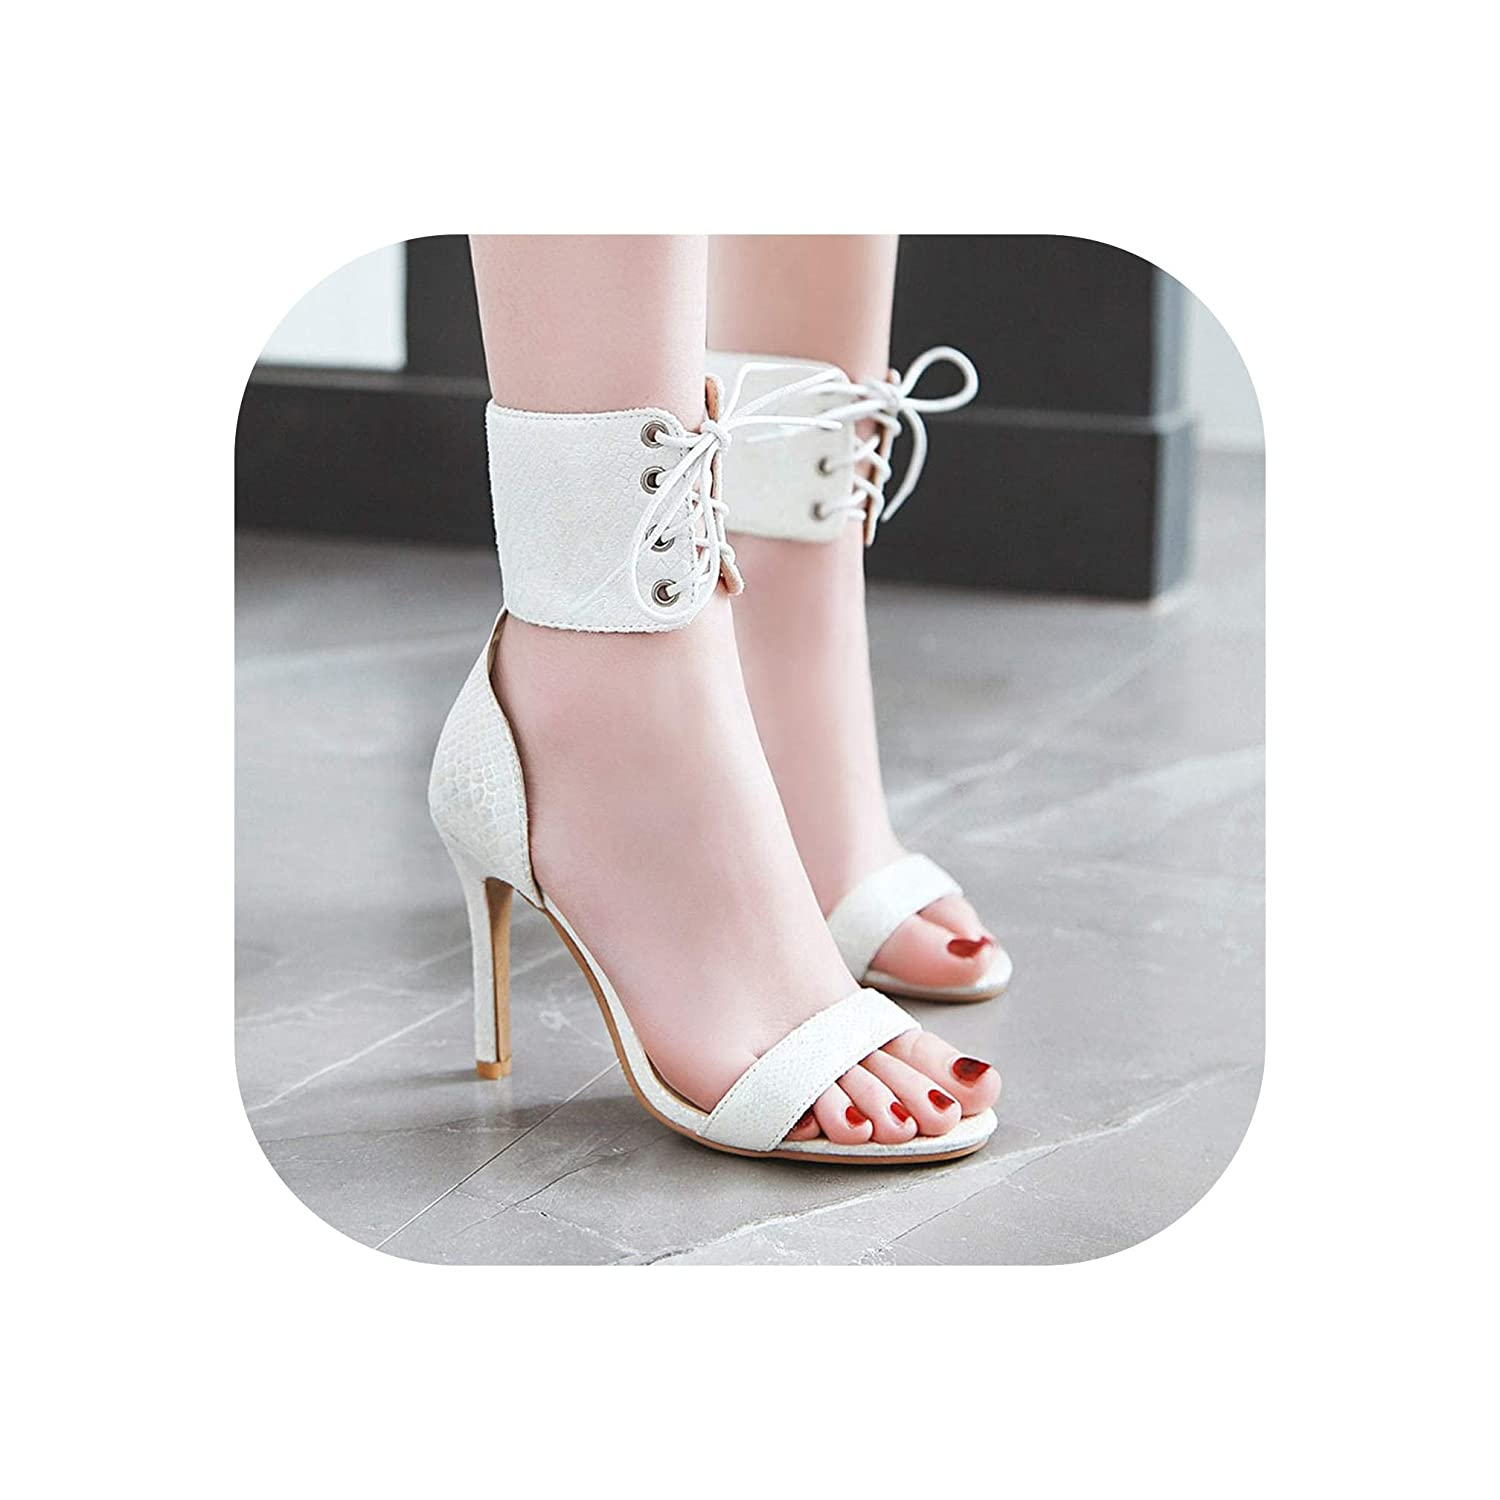 White High Heels Stiletto Sandals Women Sexy Sandal Ankle Wrap Open Toe Lace Up Pumps shoes